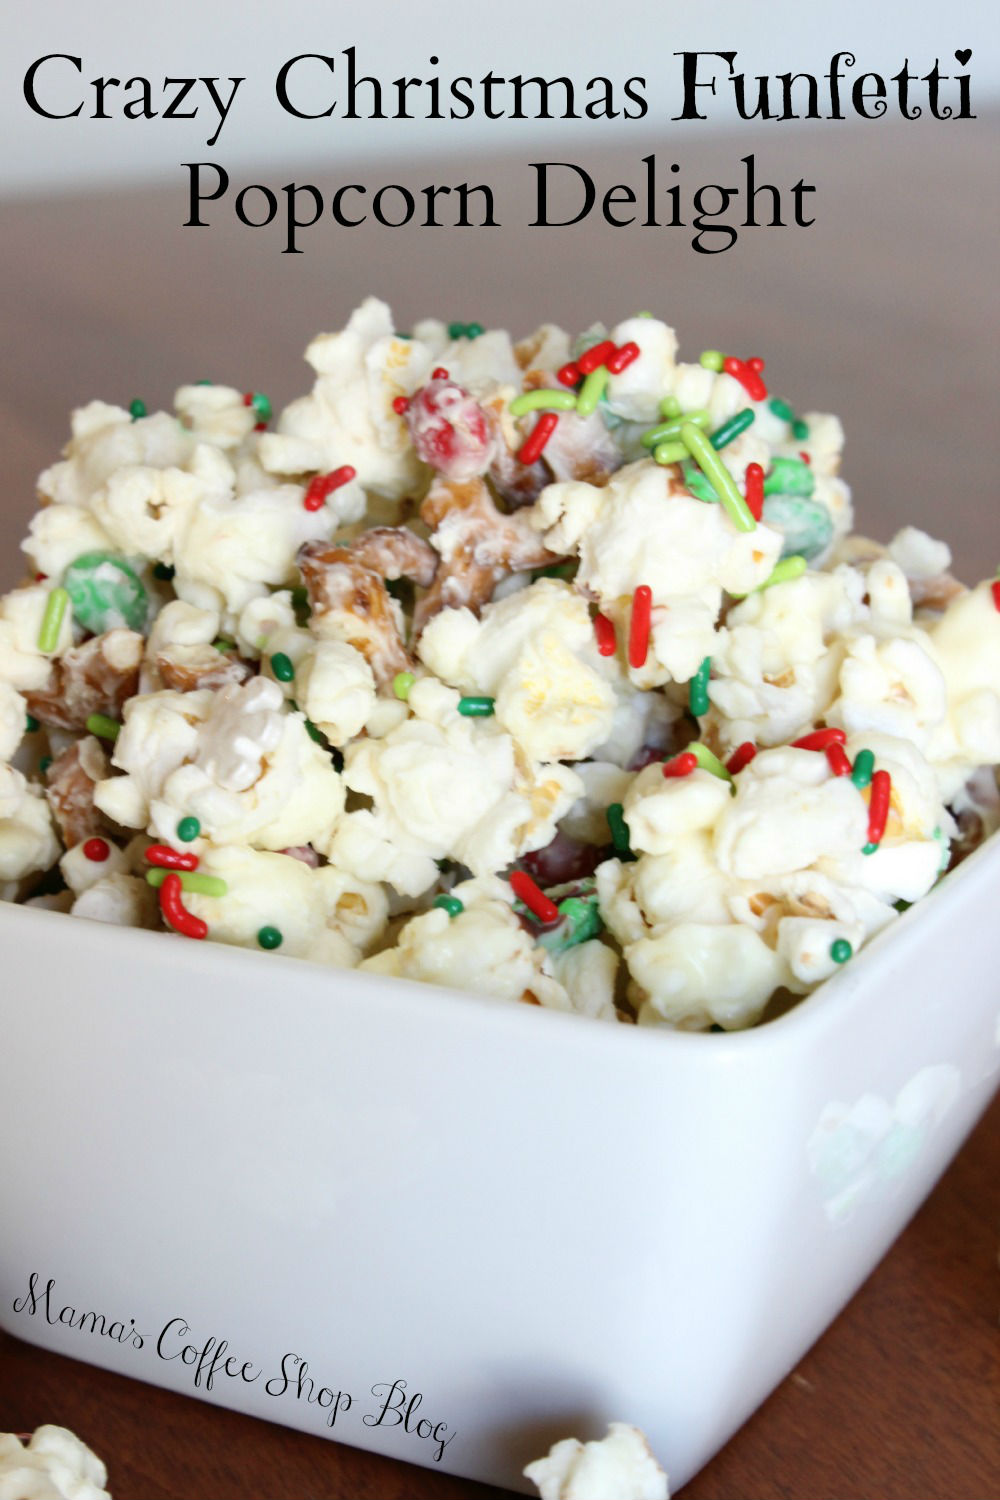 Crazy Christmas Funfetti Popcorn Delight Recipe - Mama's Coffee Shop Blog